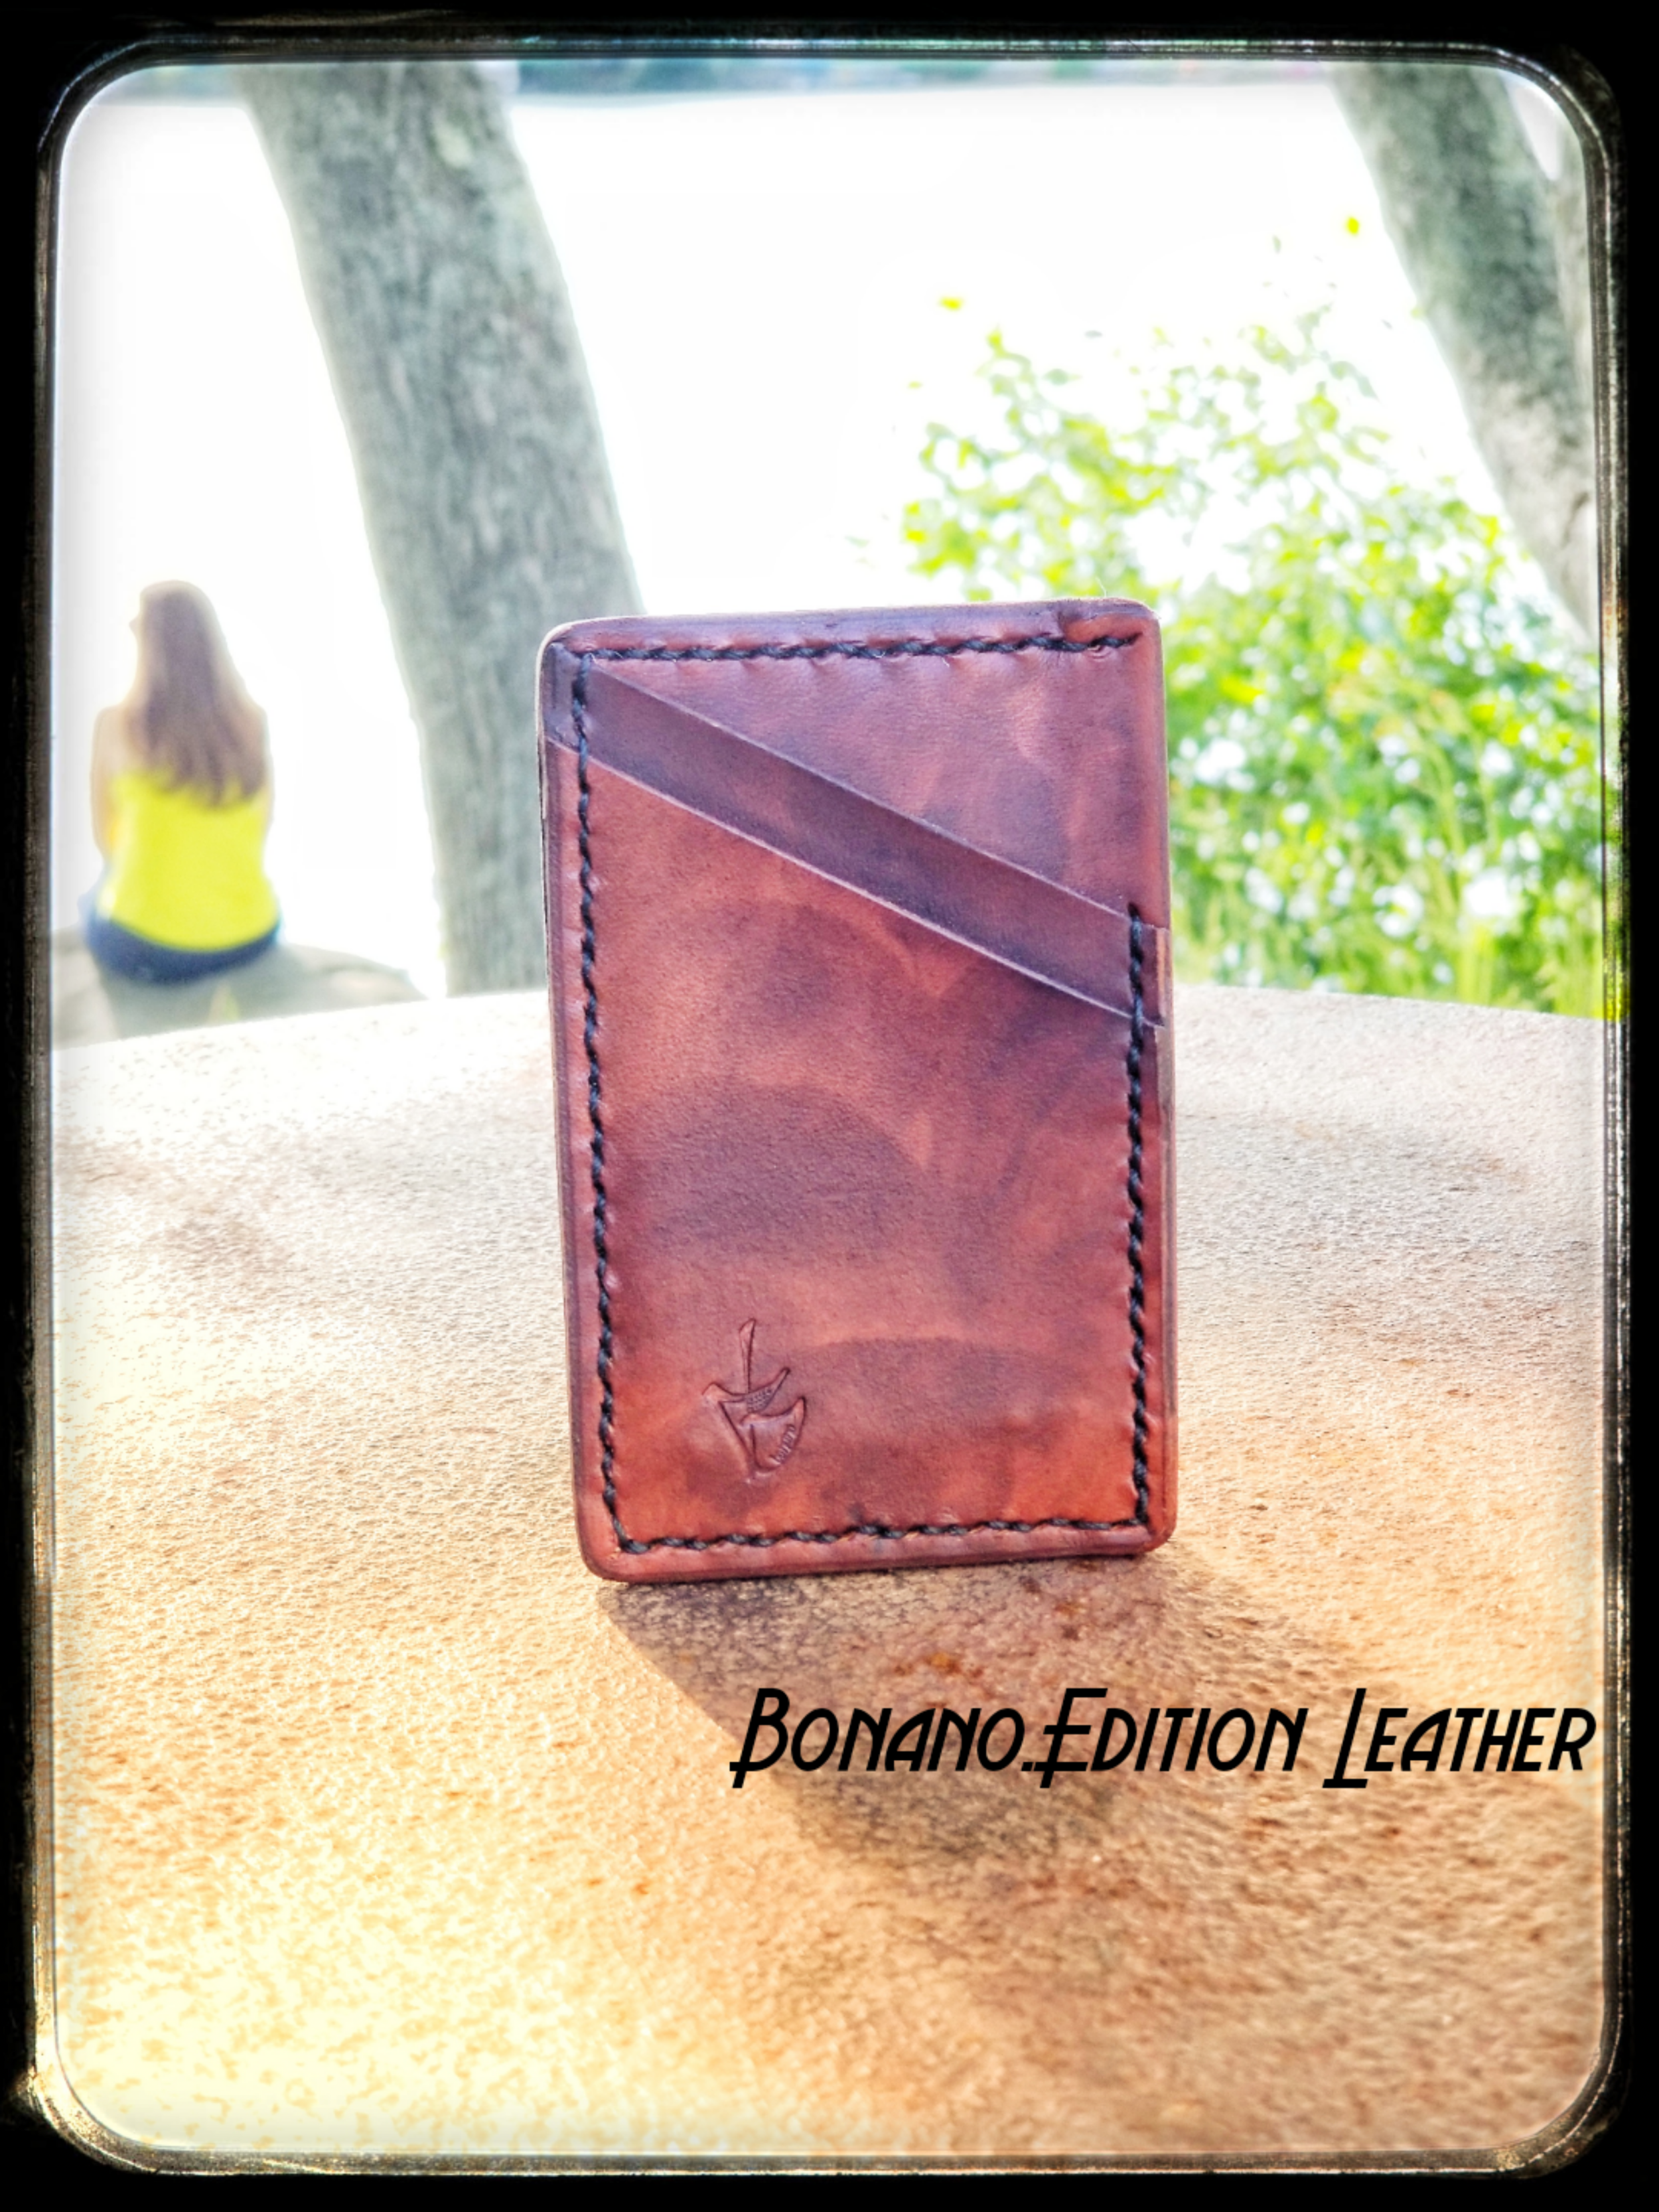 100% Genuine Leather - Bonano.Edition Leather wallets are genuinely handmade from start to finish. See the quality. Feel the quality.